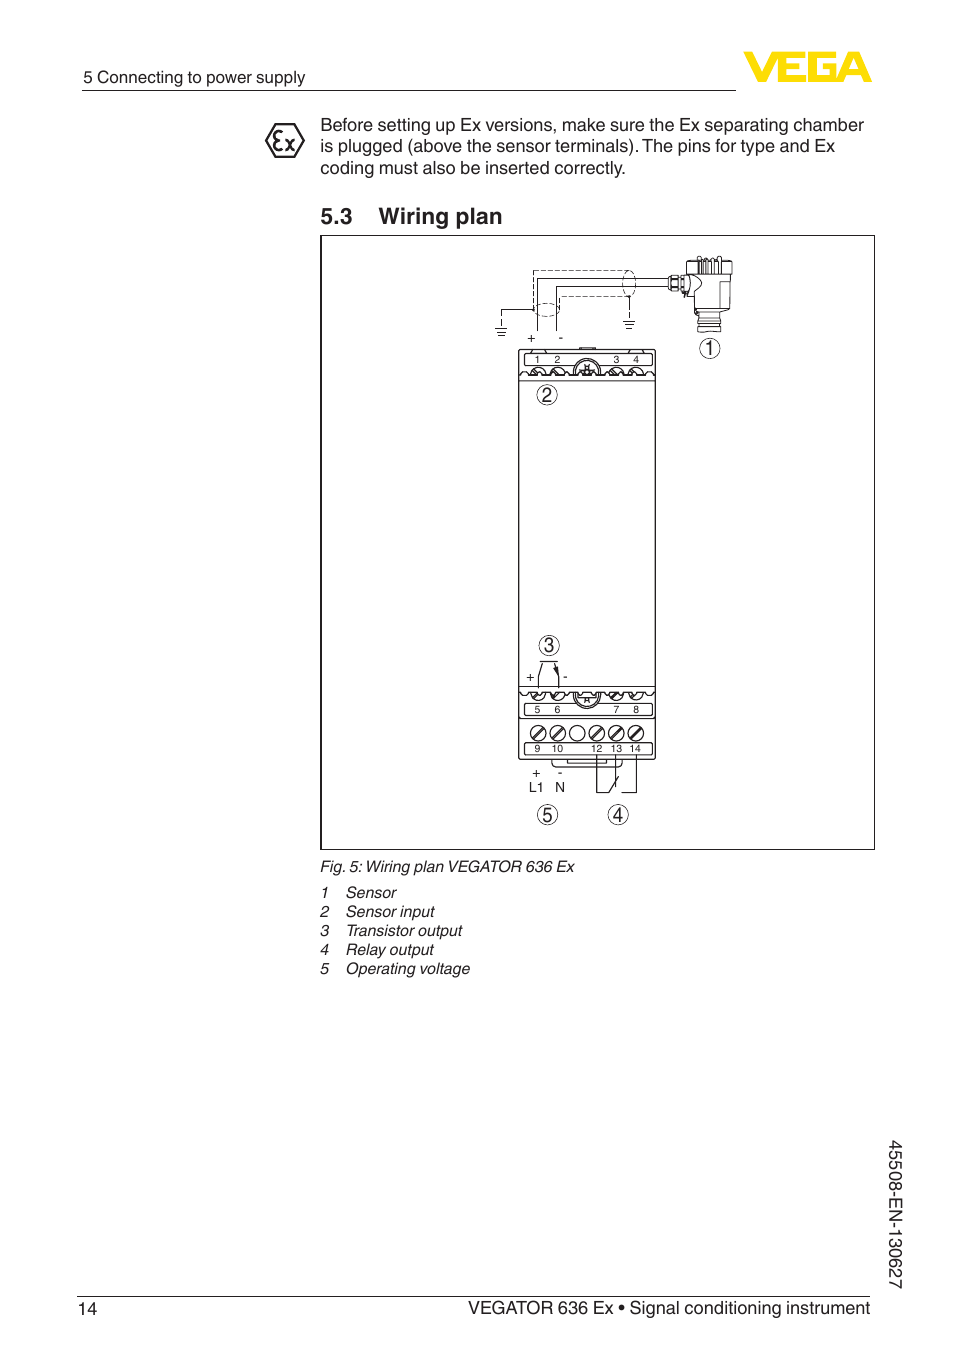 3 wiring plan | vega vegator 636 ex user manual | page 14 / 28 vega wiring diagram for heat vega wiring diagram